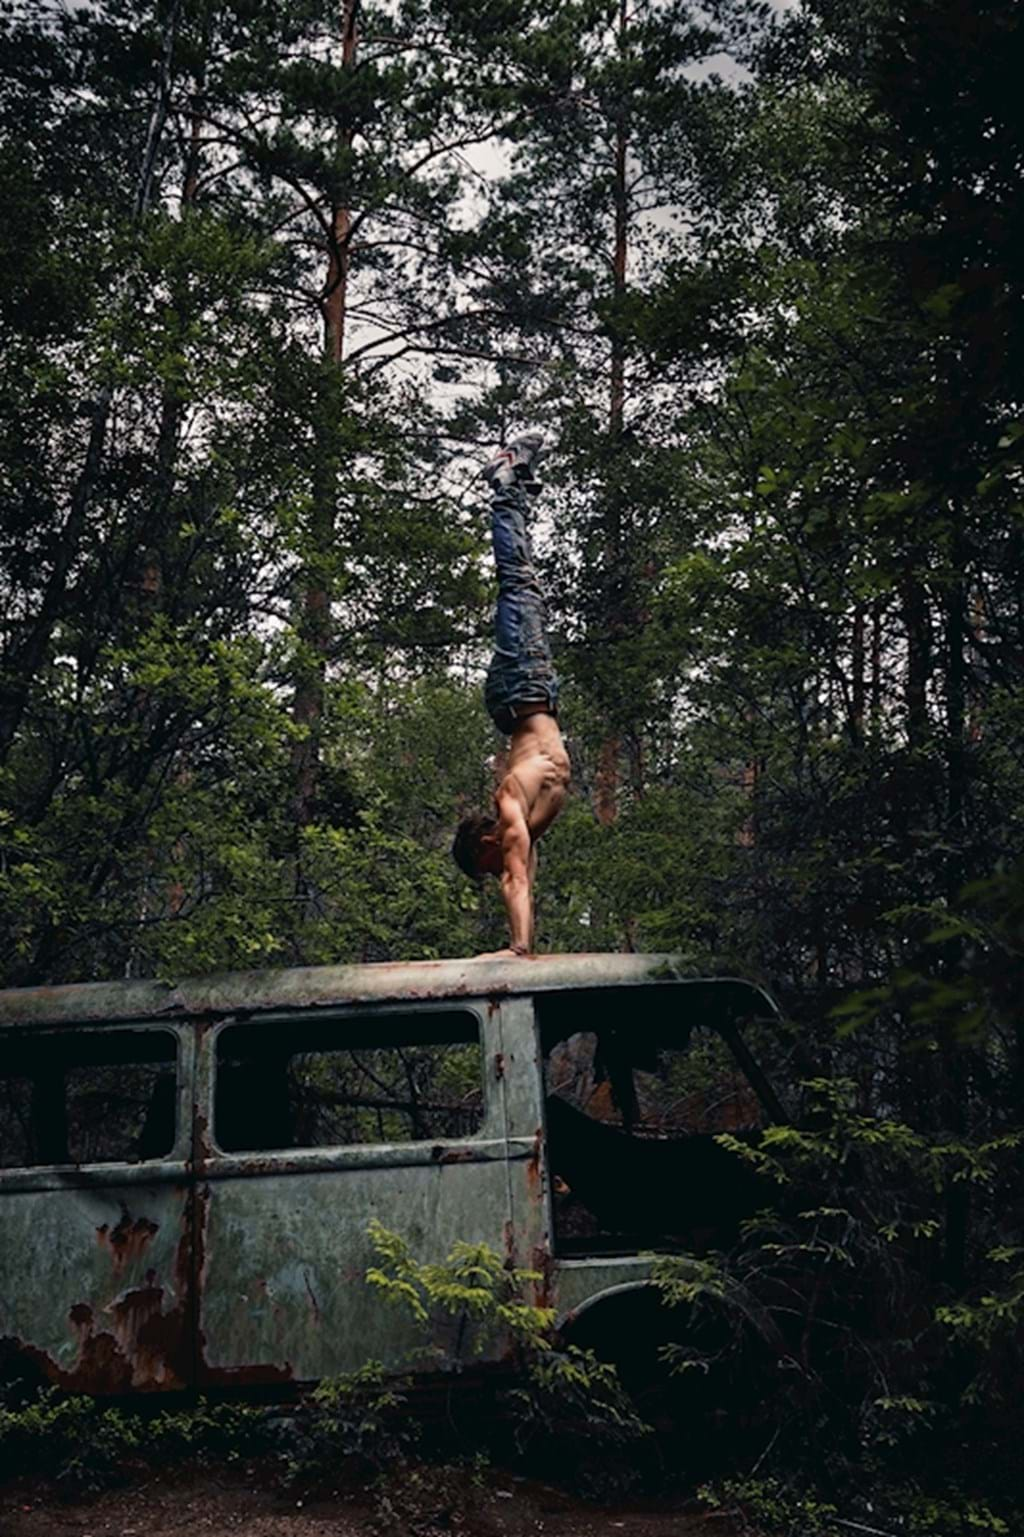 Poster: Forest handstand on a bus - People